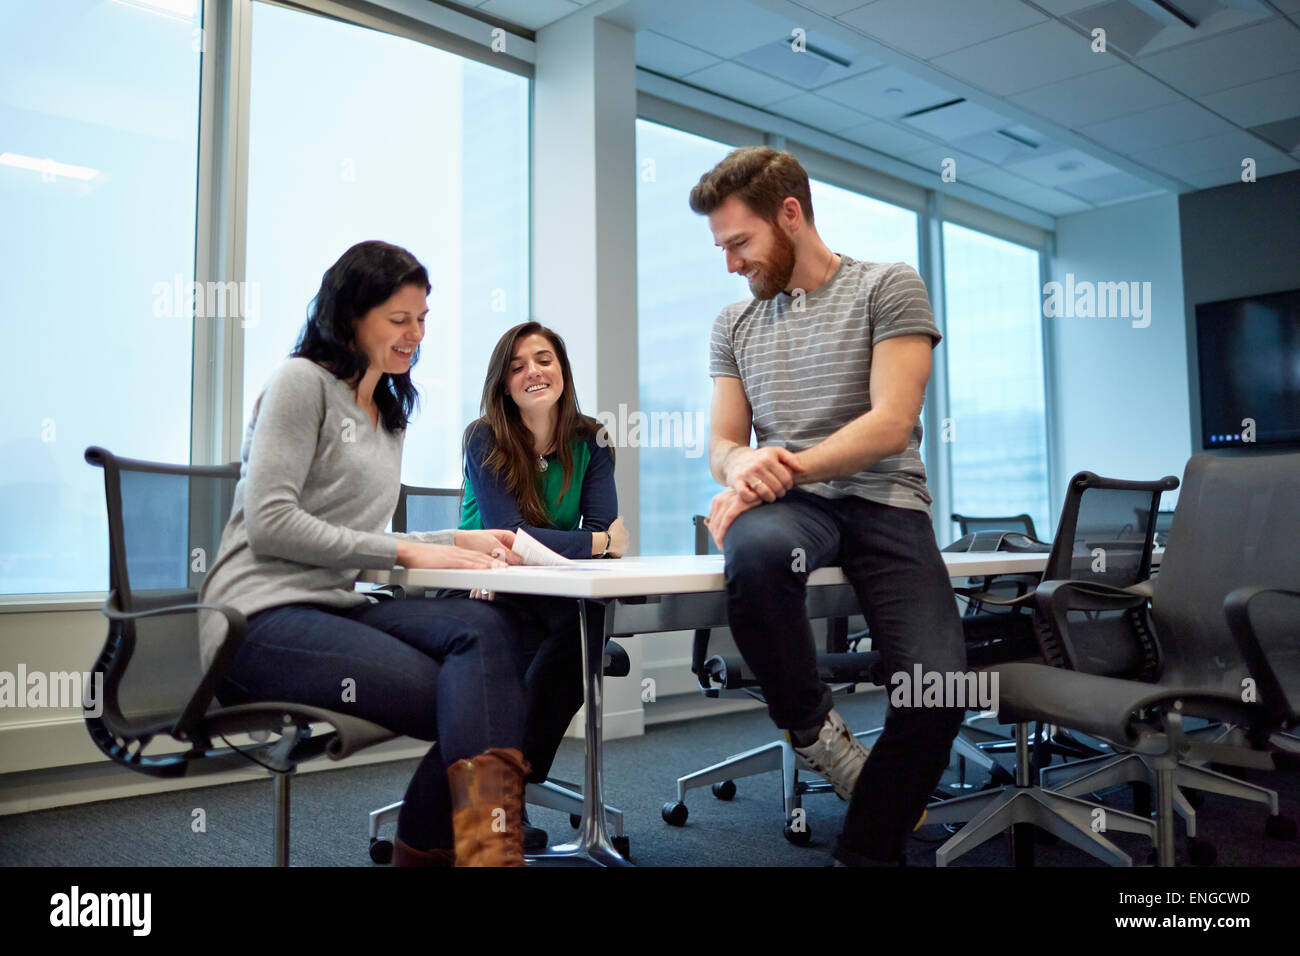 Three colleagues at a meeting Looking over proofs of printed pages and designs. A creative environment. - Stock Image